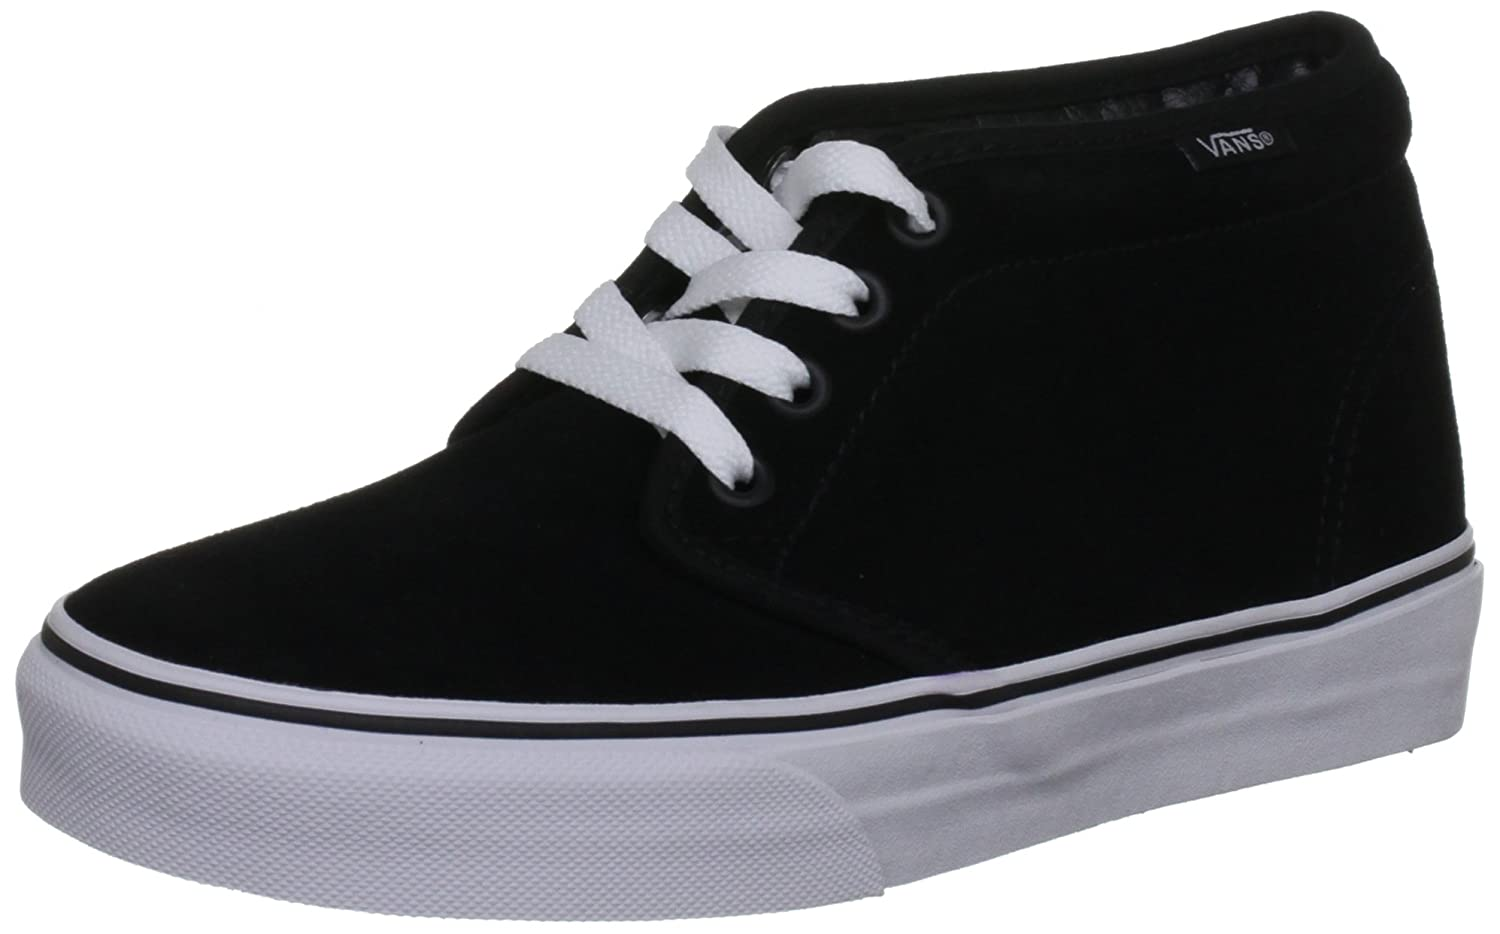 Vans Men's Chukka Boot Core Classics B001CY8CM6 13 D(M) US Mens|Black/White